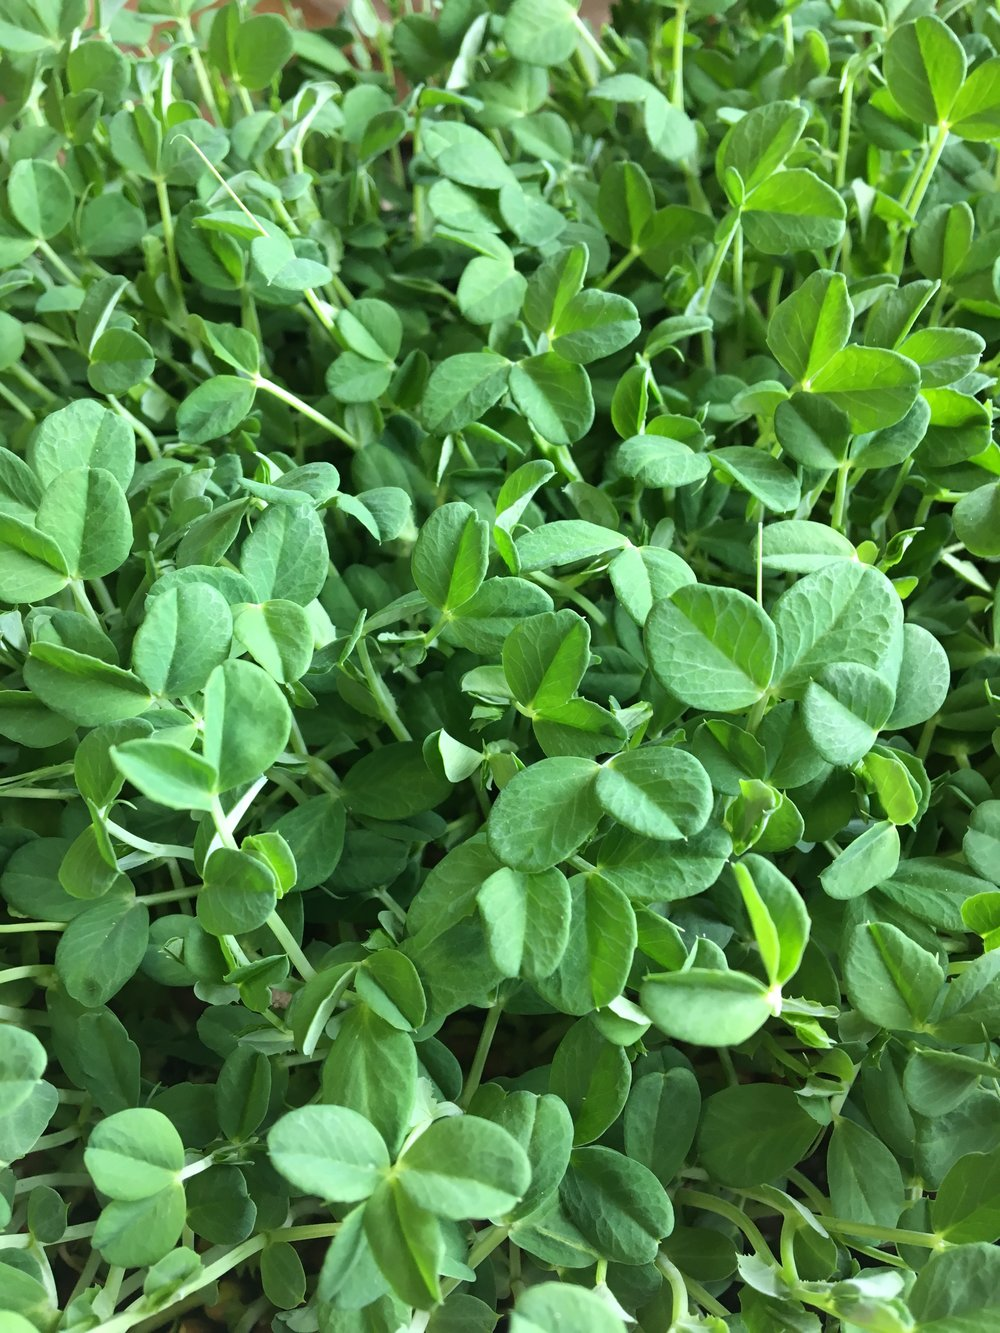 Pea shoots ready for harvesting.